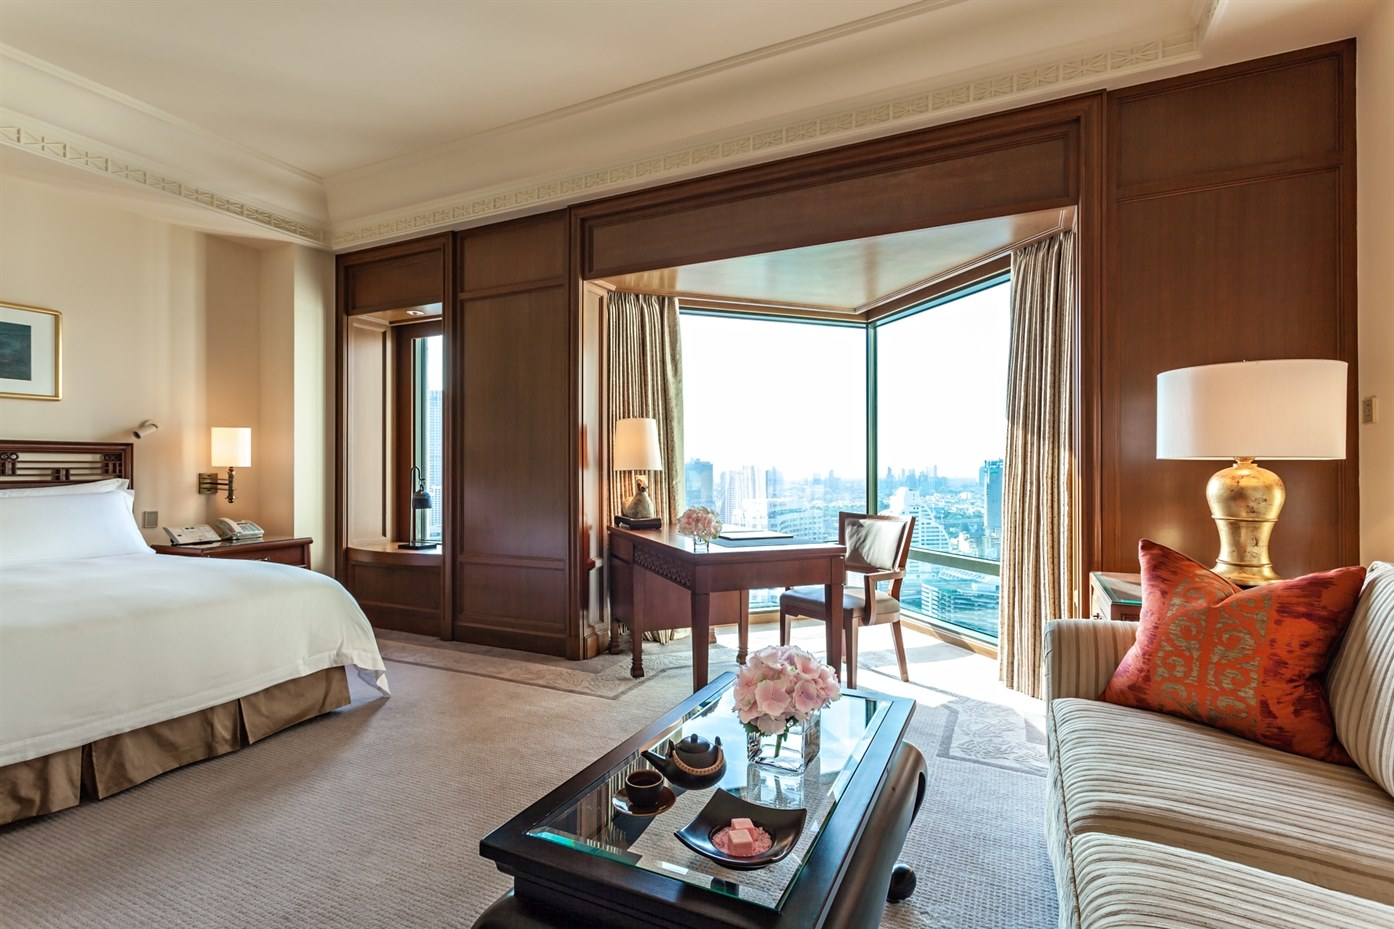 Deluxe Room at The Peninsula Bangkok